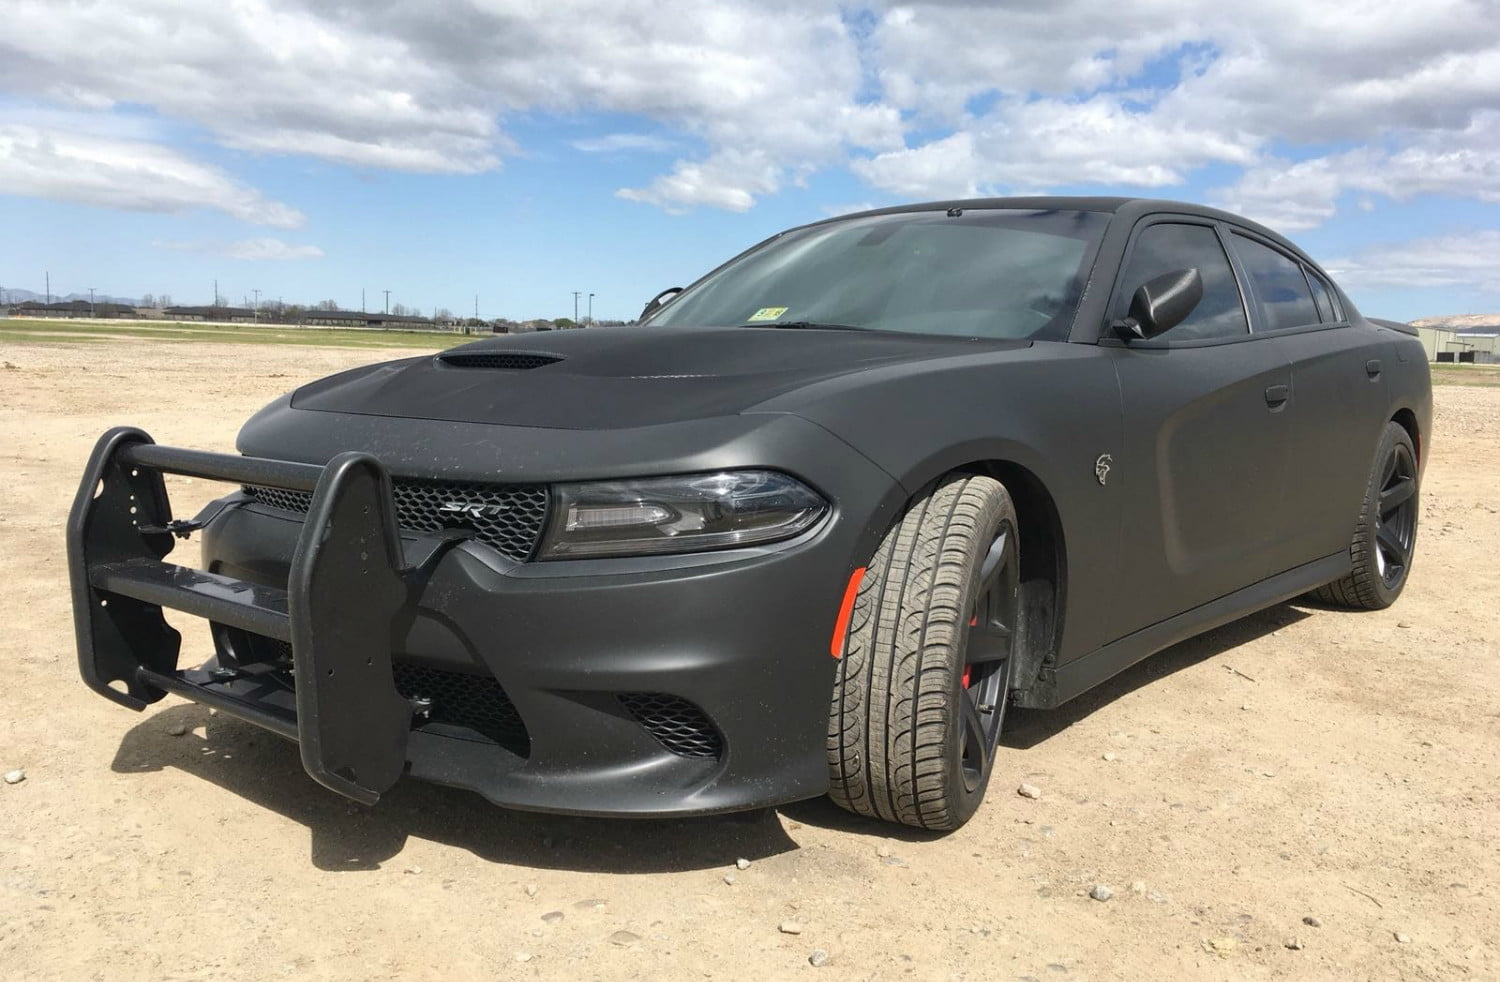 Armormax Awd Charger Srt Hellcat May Be The Ultimate Police Car 2015 Dodge Cat Digital Trends